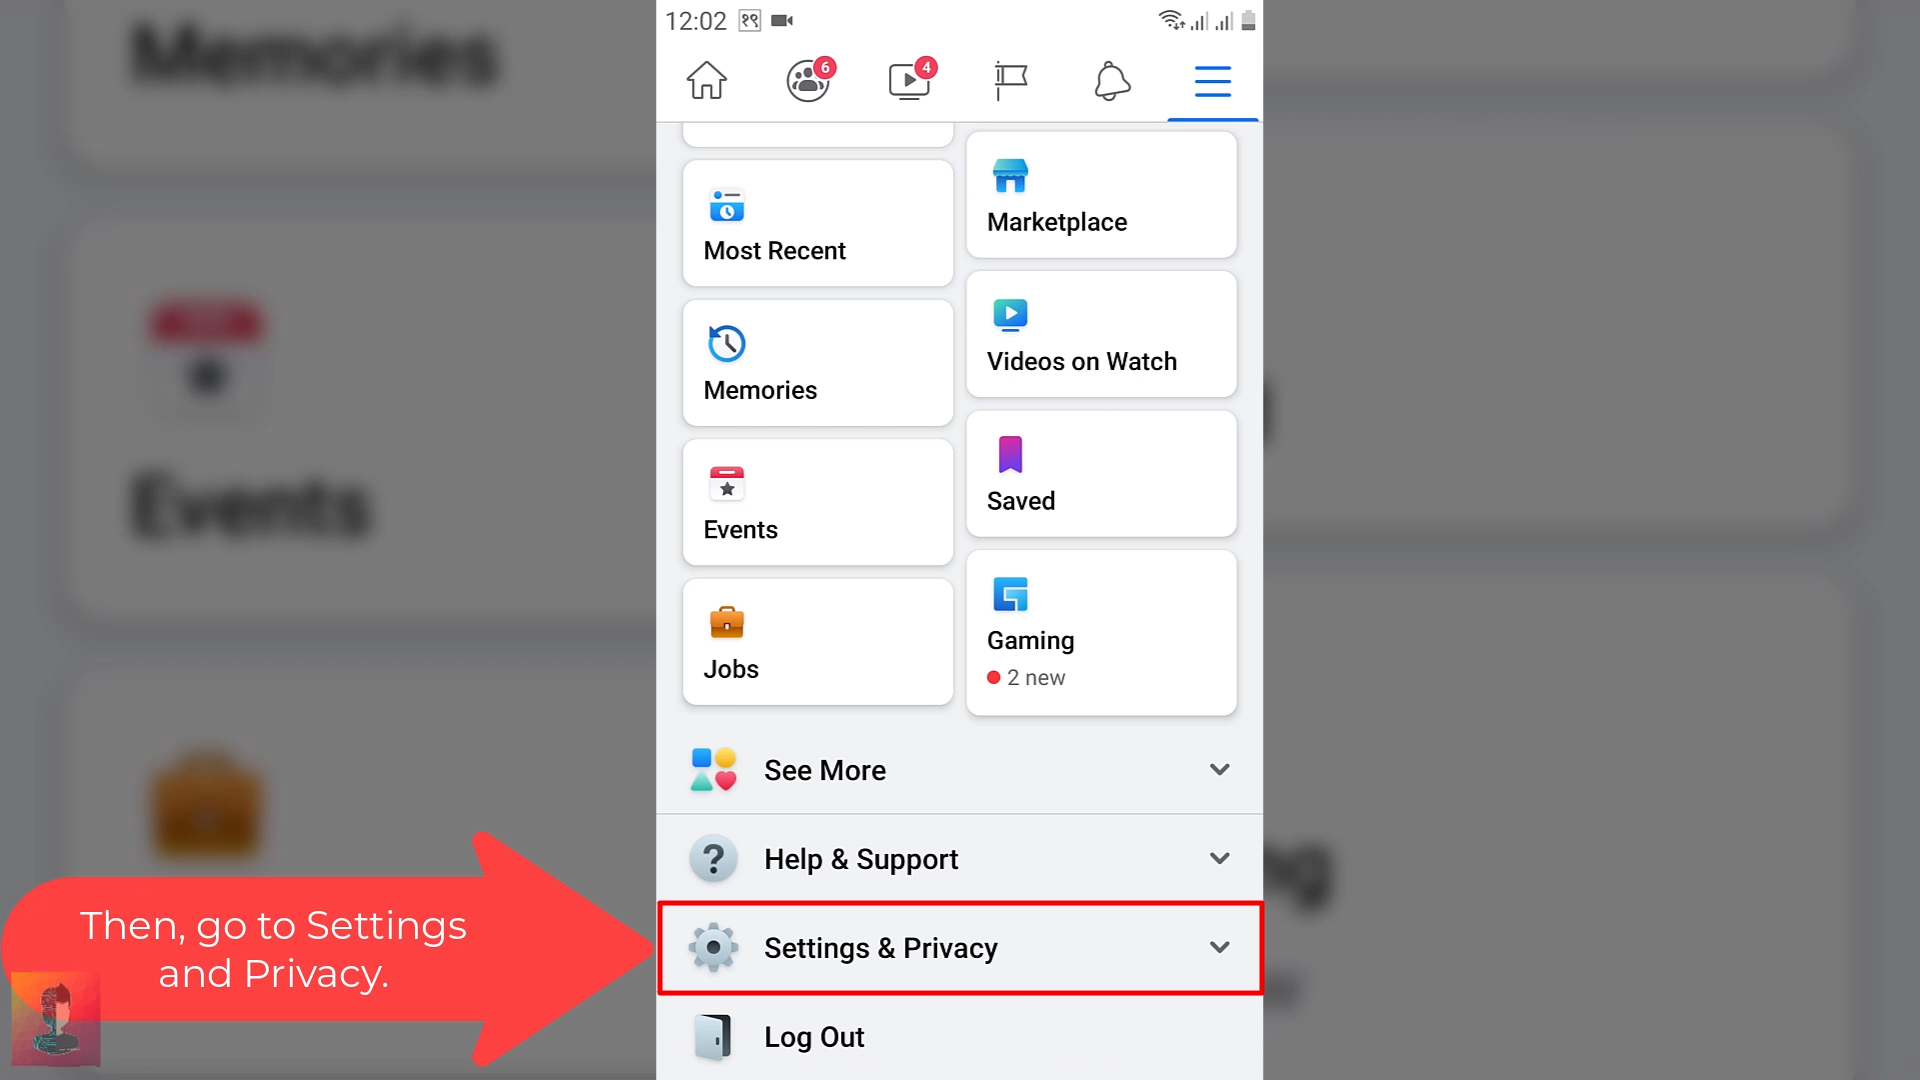 step_03 for how to enable Dark Mode on Facebook